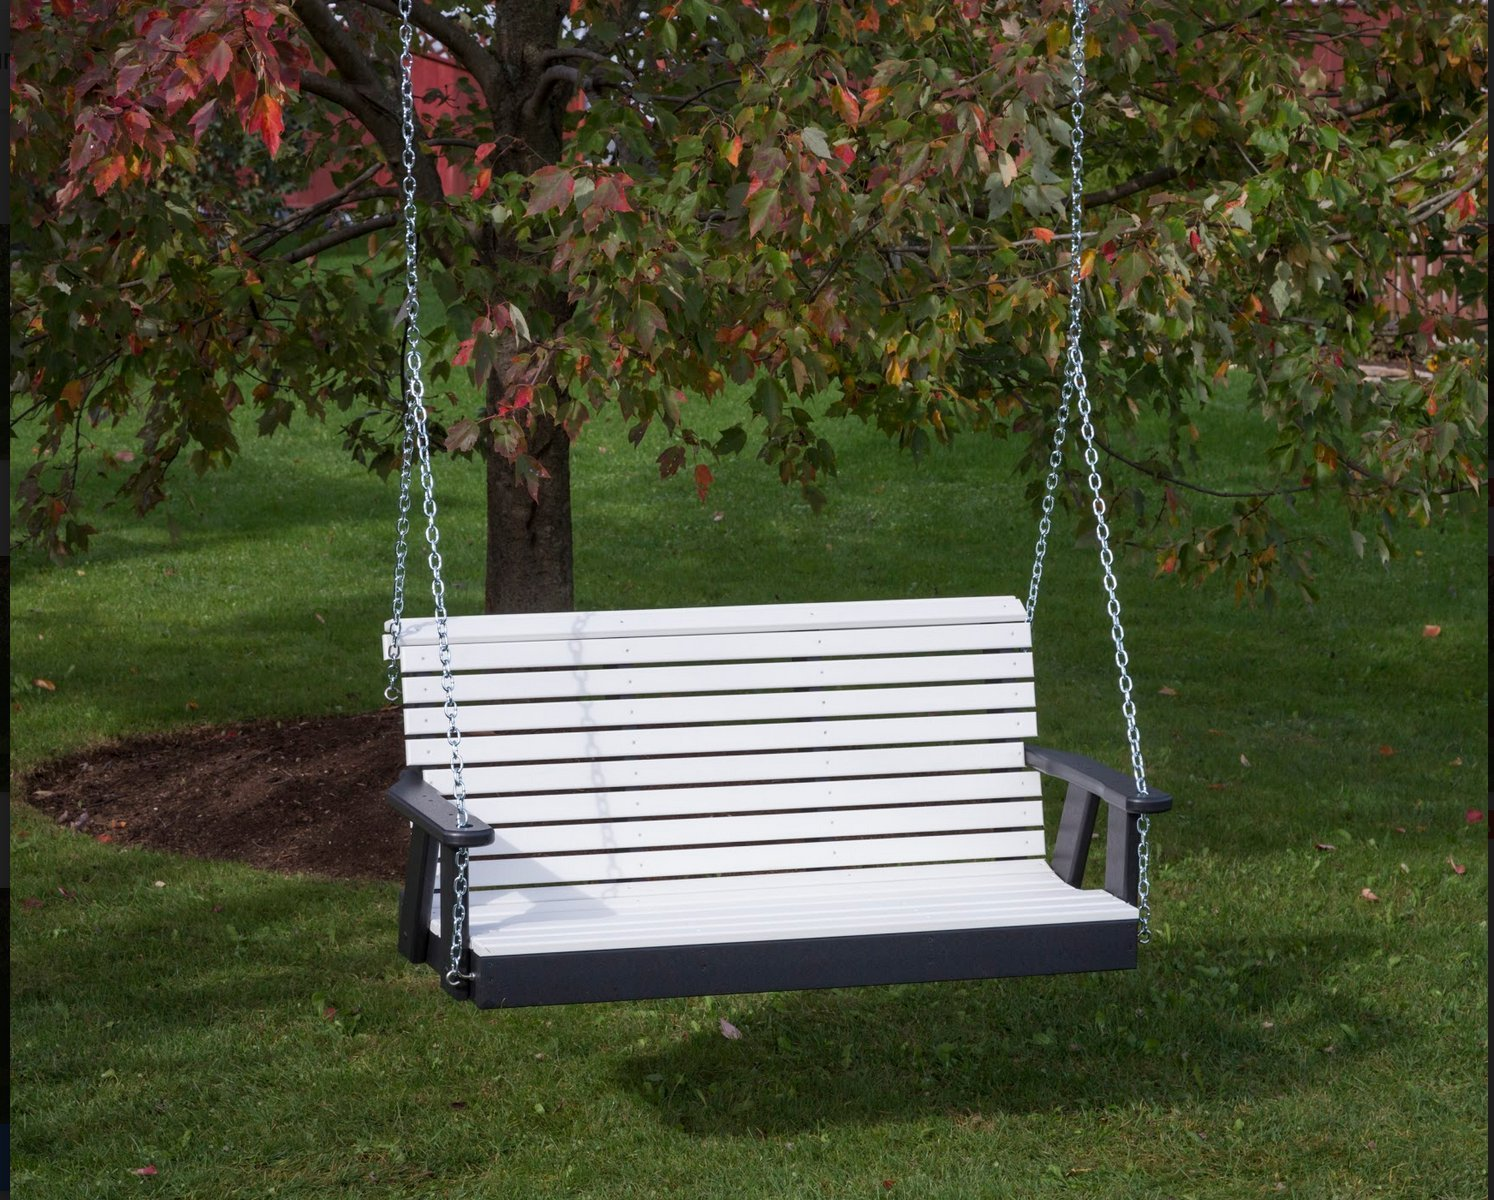 5FT-BRIGHT WHITE-POLY LUMBER ROLL BACK Porch Swing Heavy Duty EVERLASTING PolyTuf HDPE - MADE IN USA - AMISH CRAFTED by ECOMMERSIFY INC (Image #1)